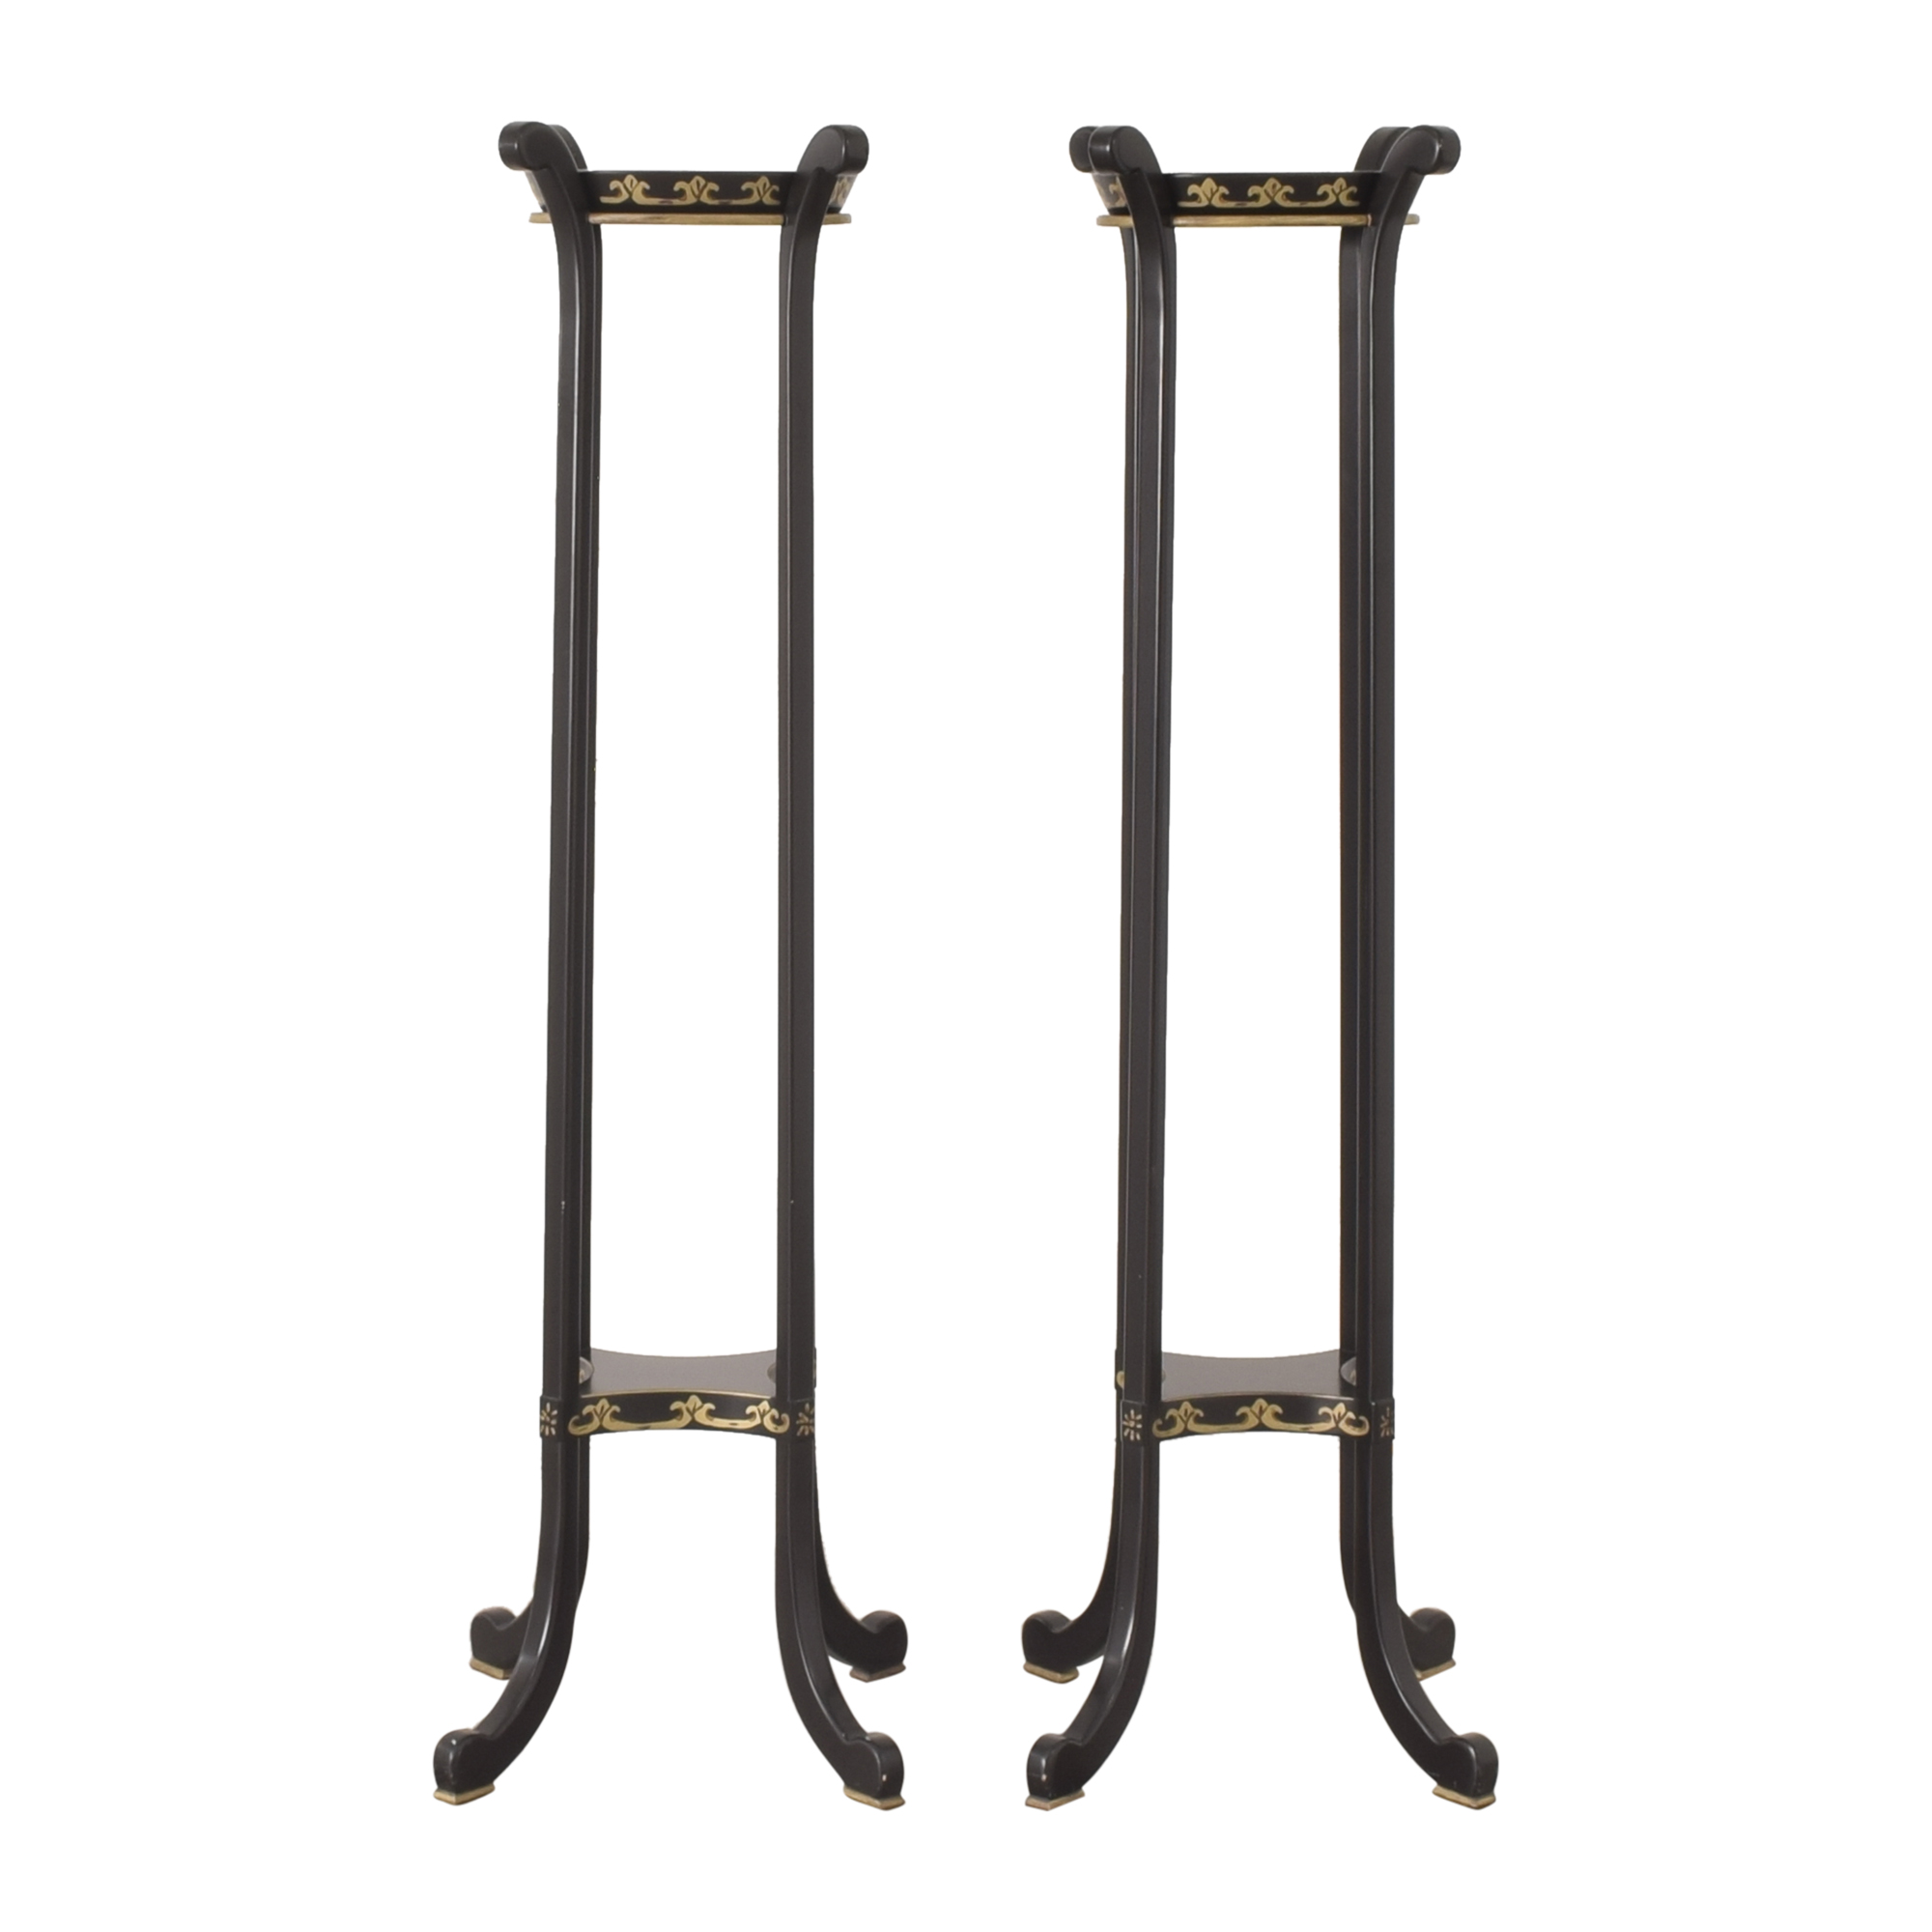 shop Maitland-Smith Decorative Plant Stands Maitland-Smith